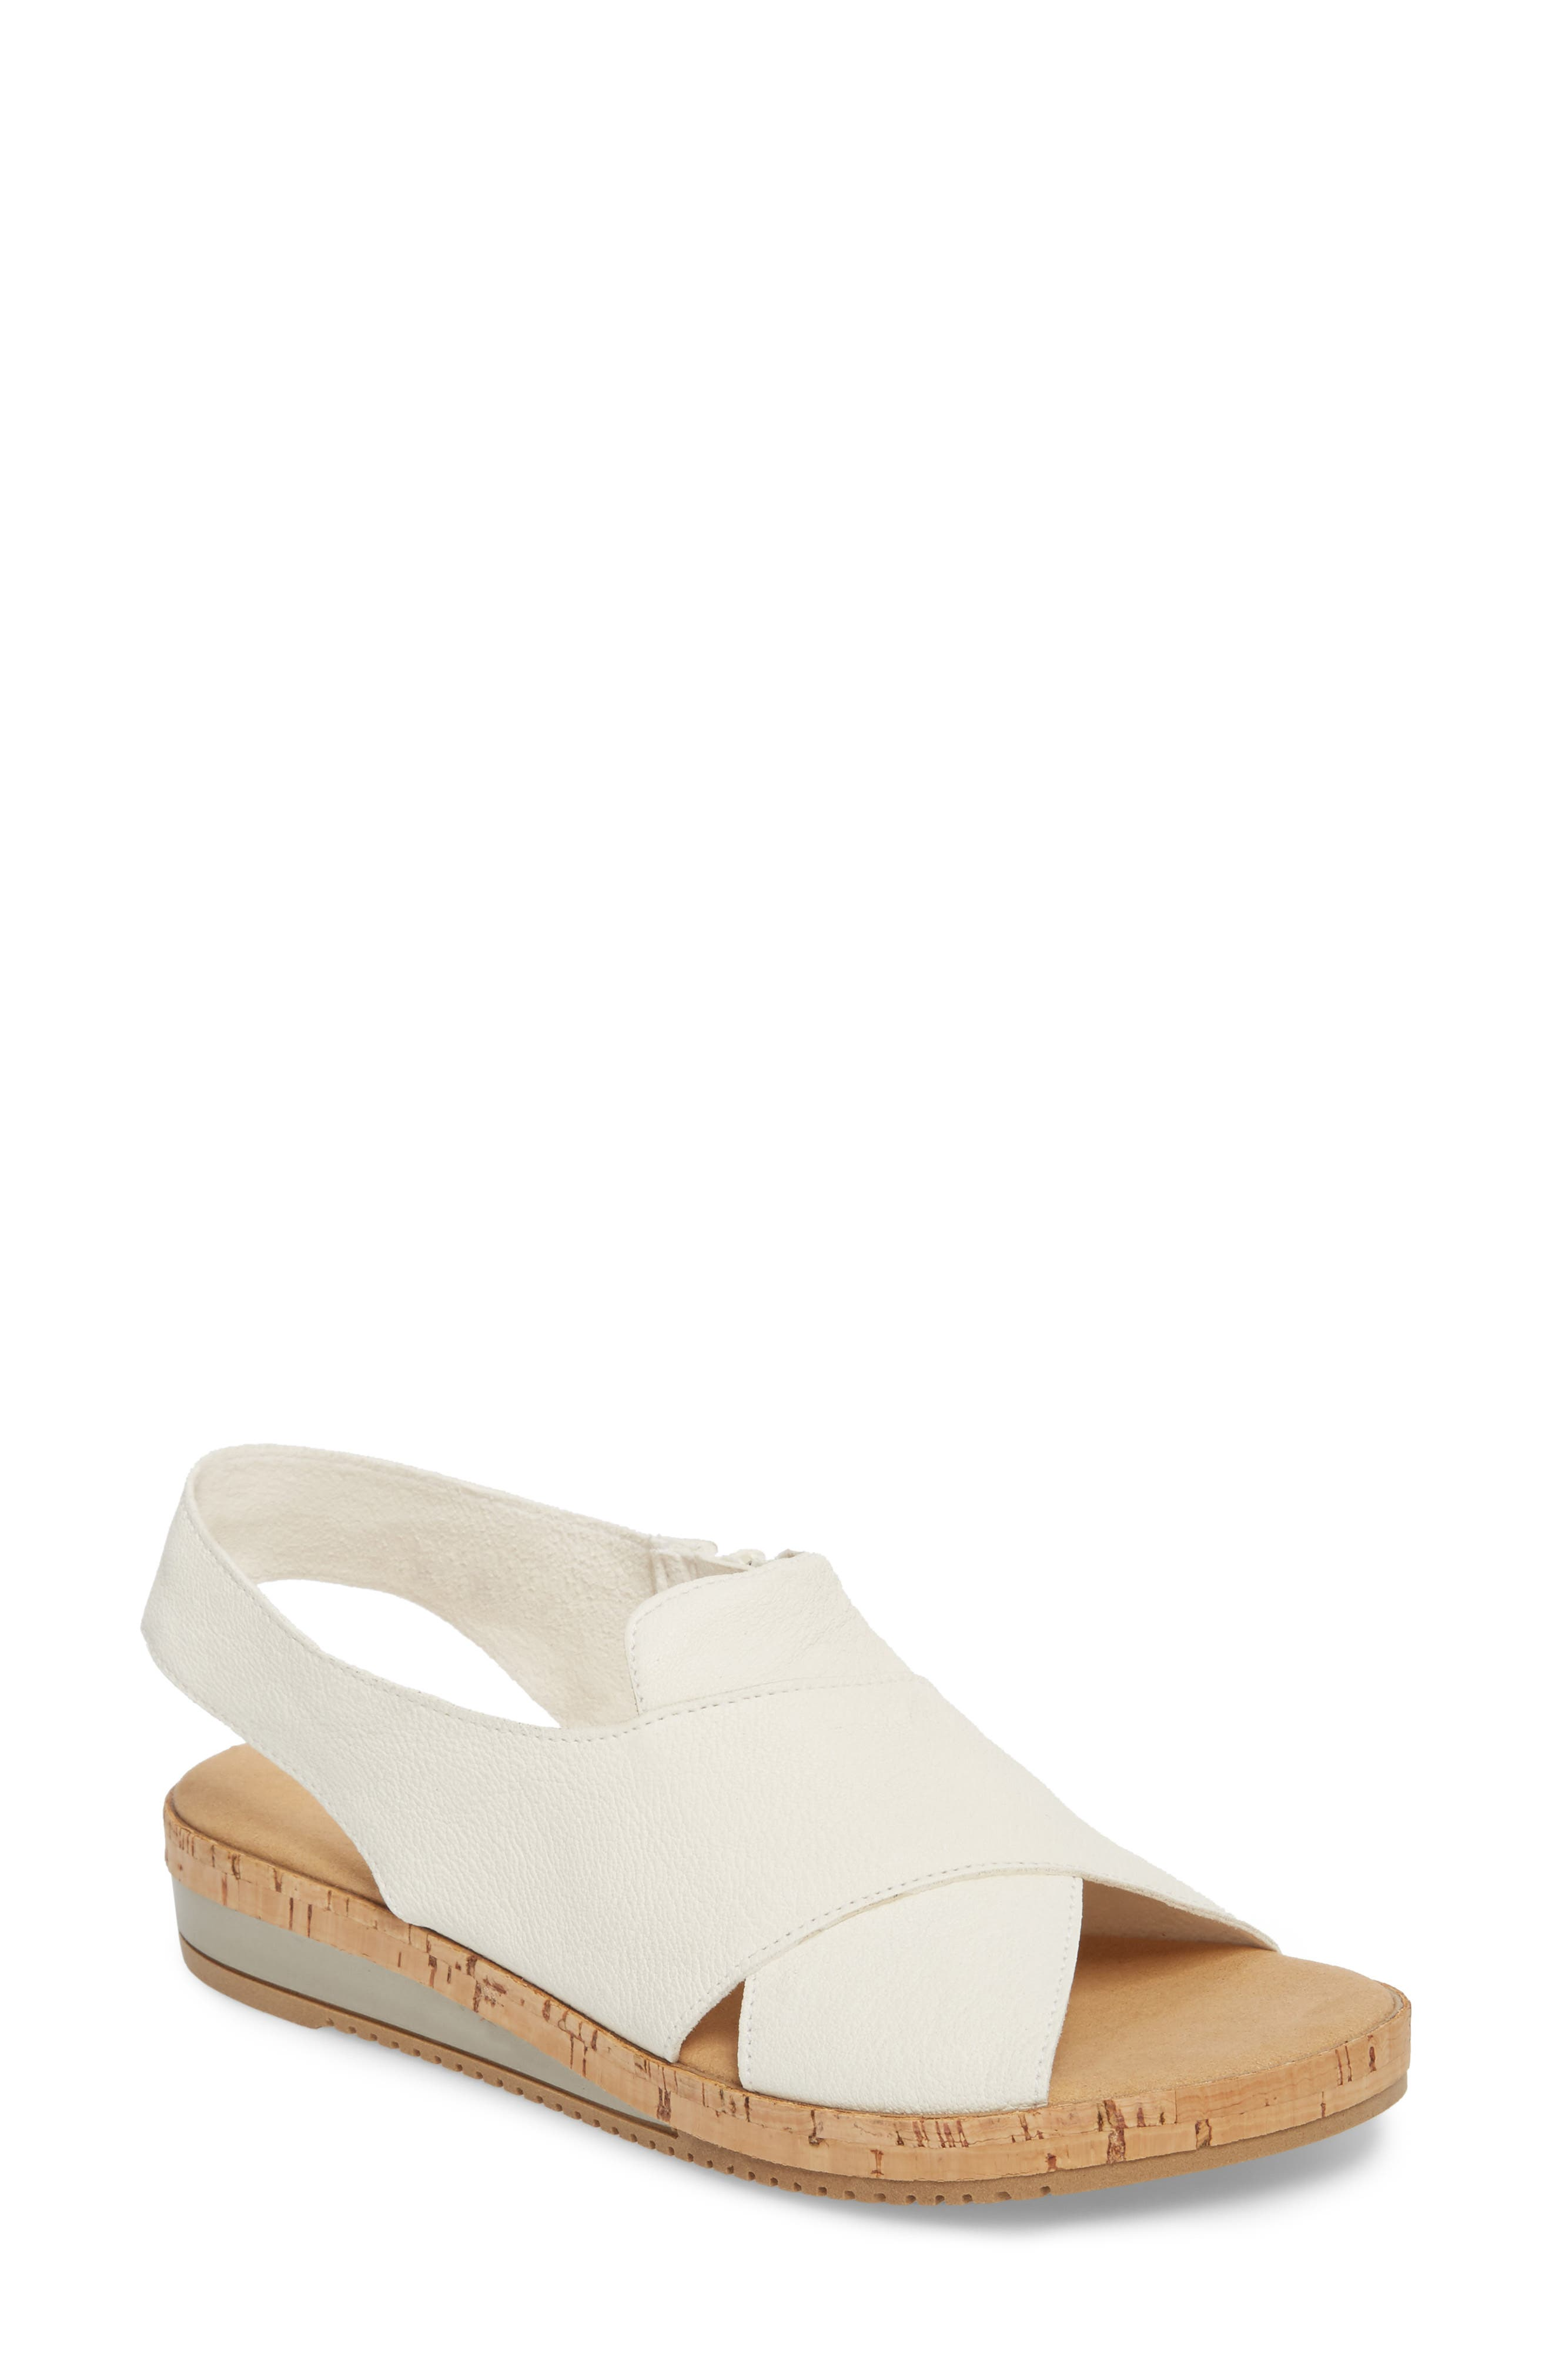 Sylke Sandal,                             Main thumbnail 1, color,                             WHITE LEATHER